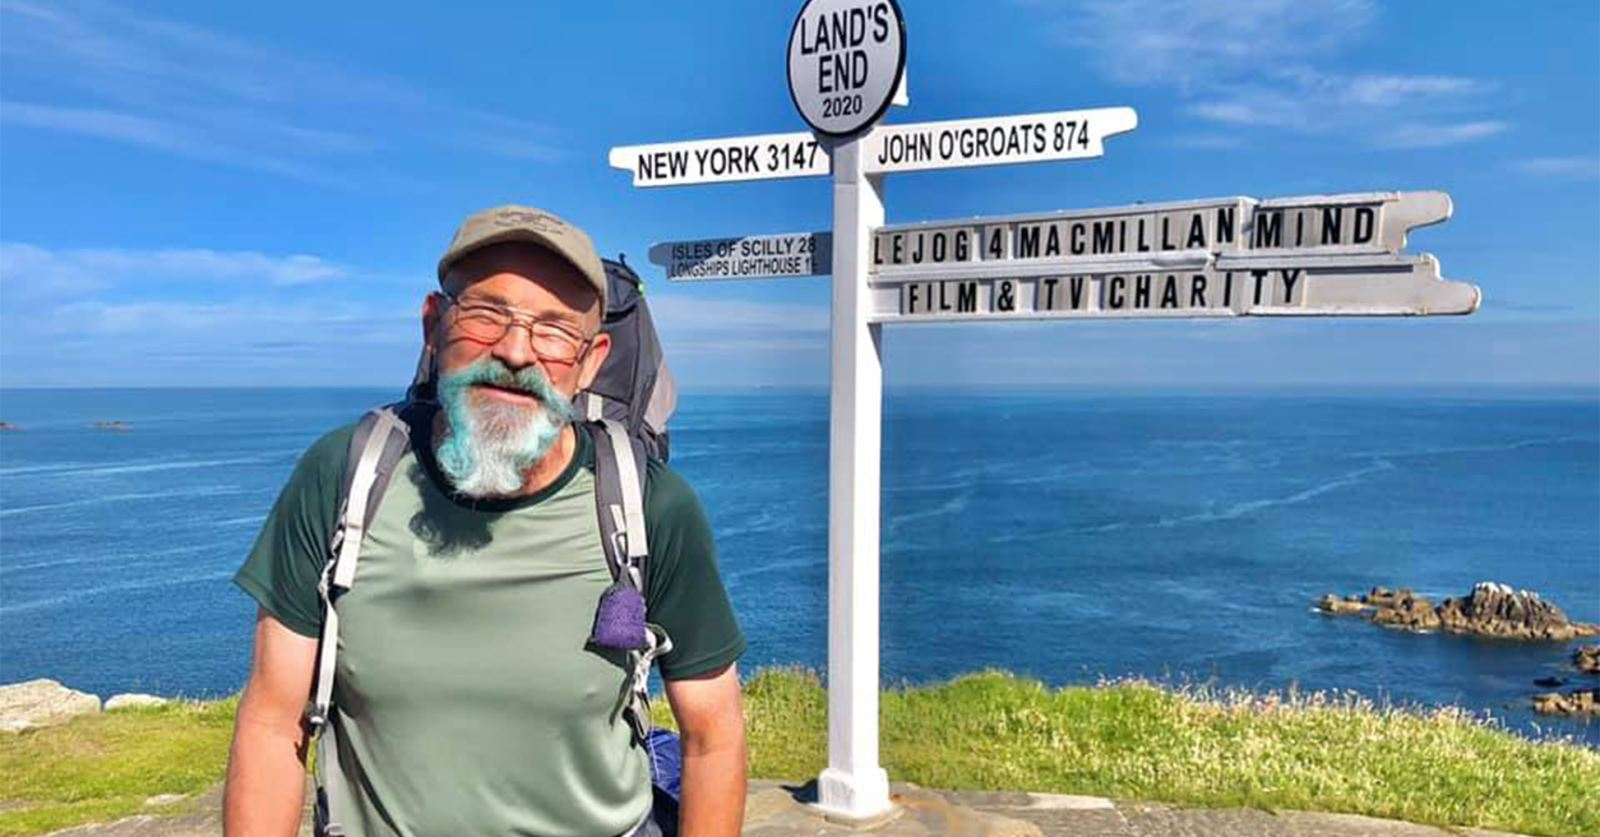 And he's off... GTC member John Barrow has set off on his epic walk for 3 great charities: Mind, MacMillan and Film + TV